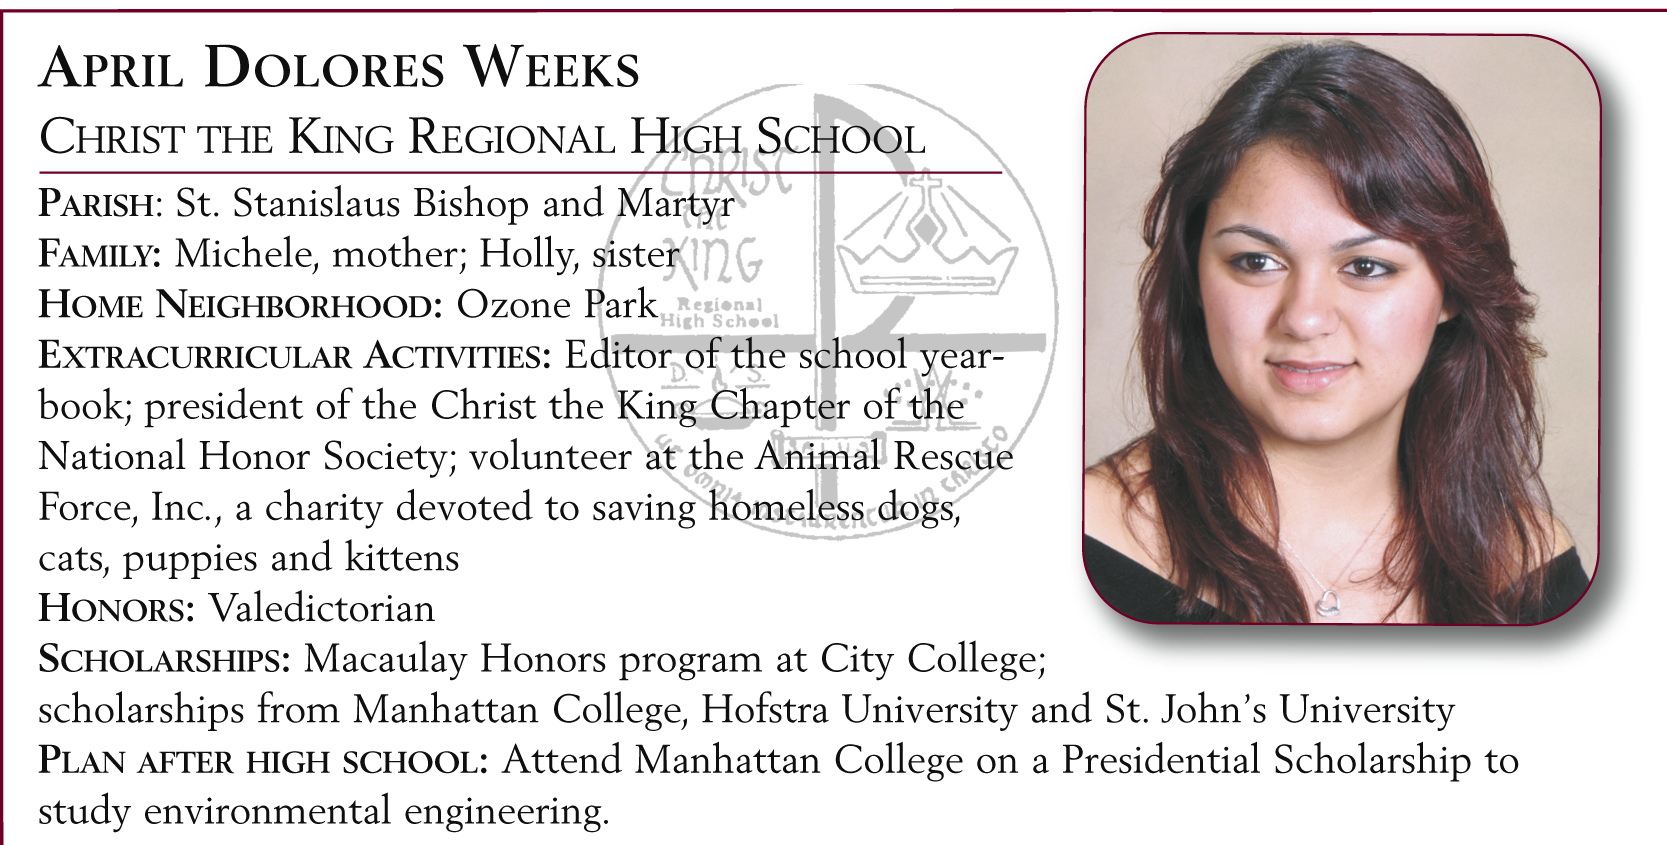 April Dolores Weeks, Christ the King Regional High School